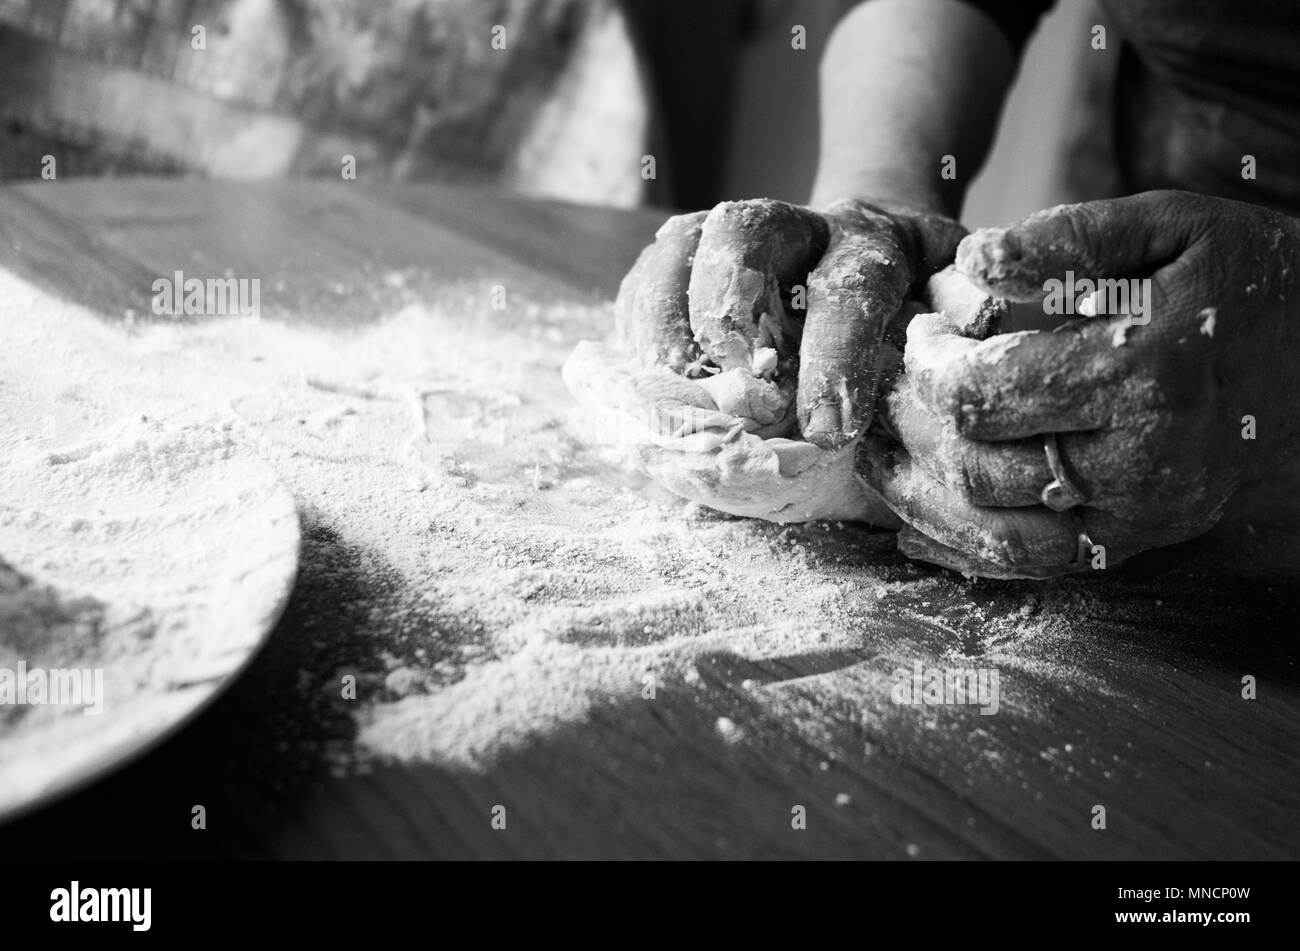 Kneading dough - Stock Image